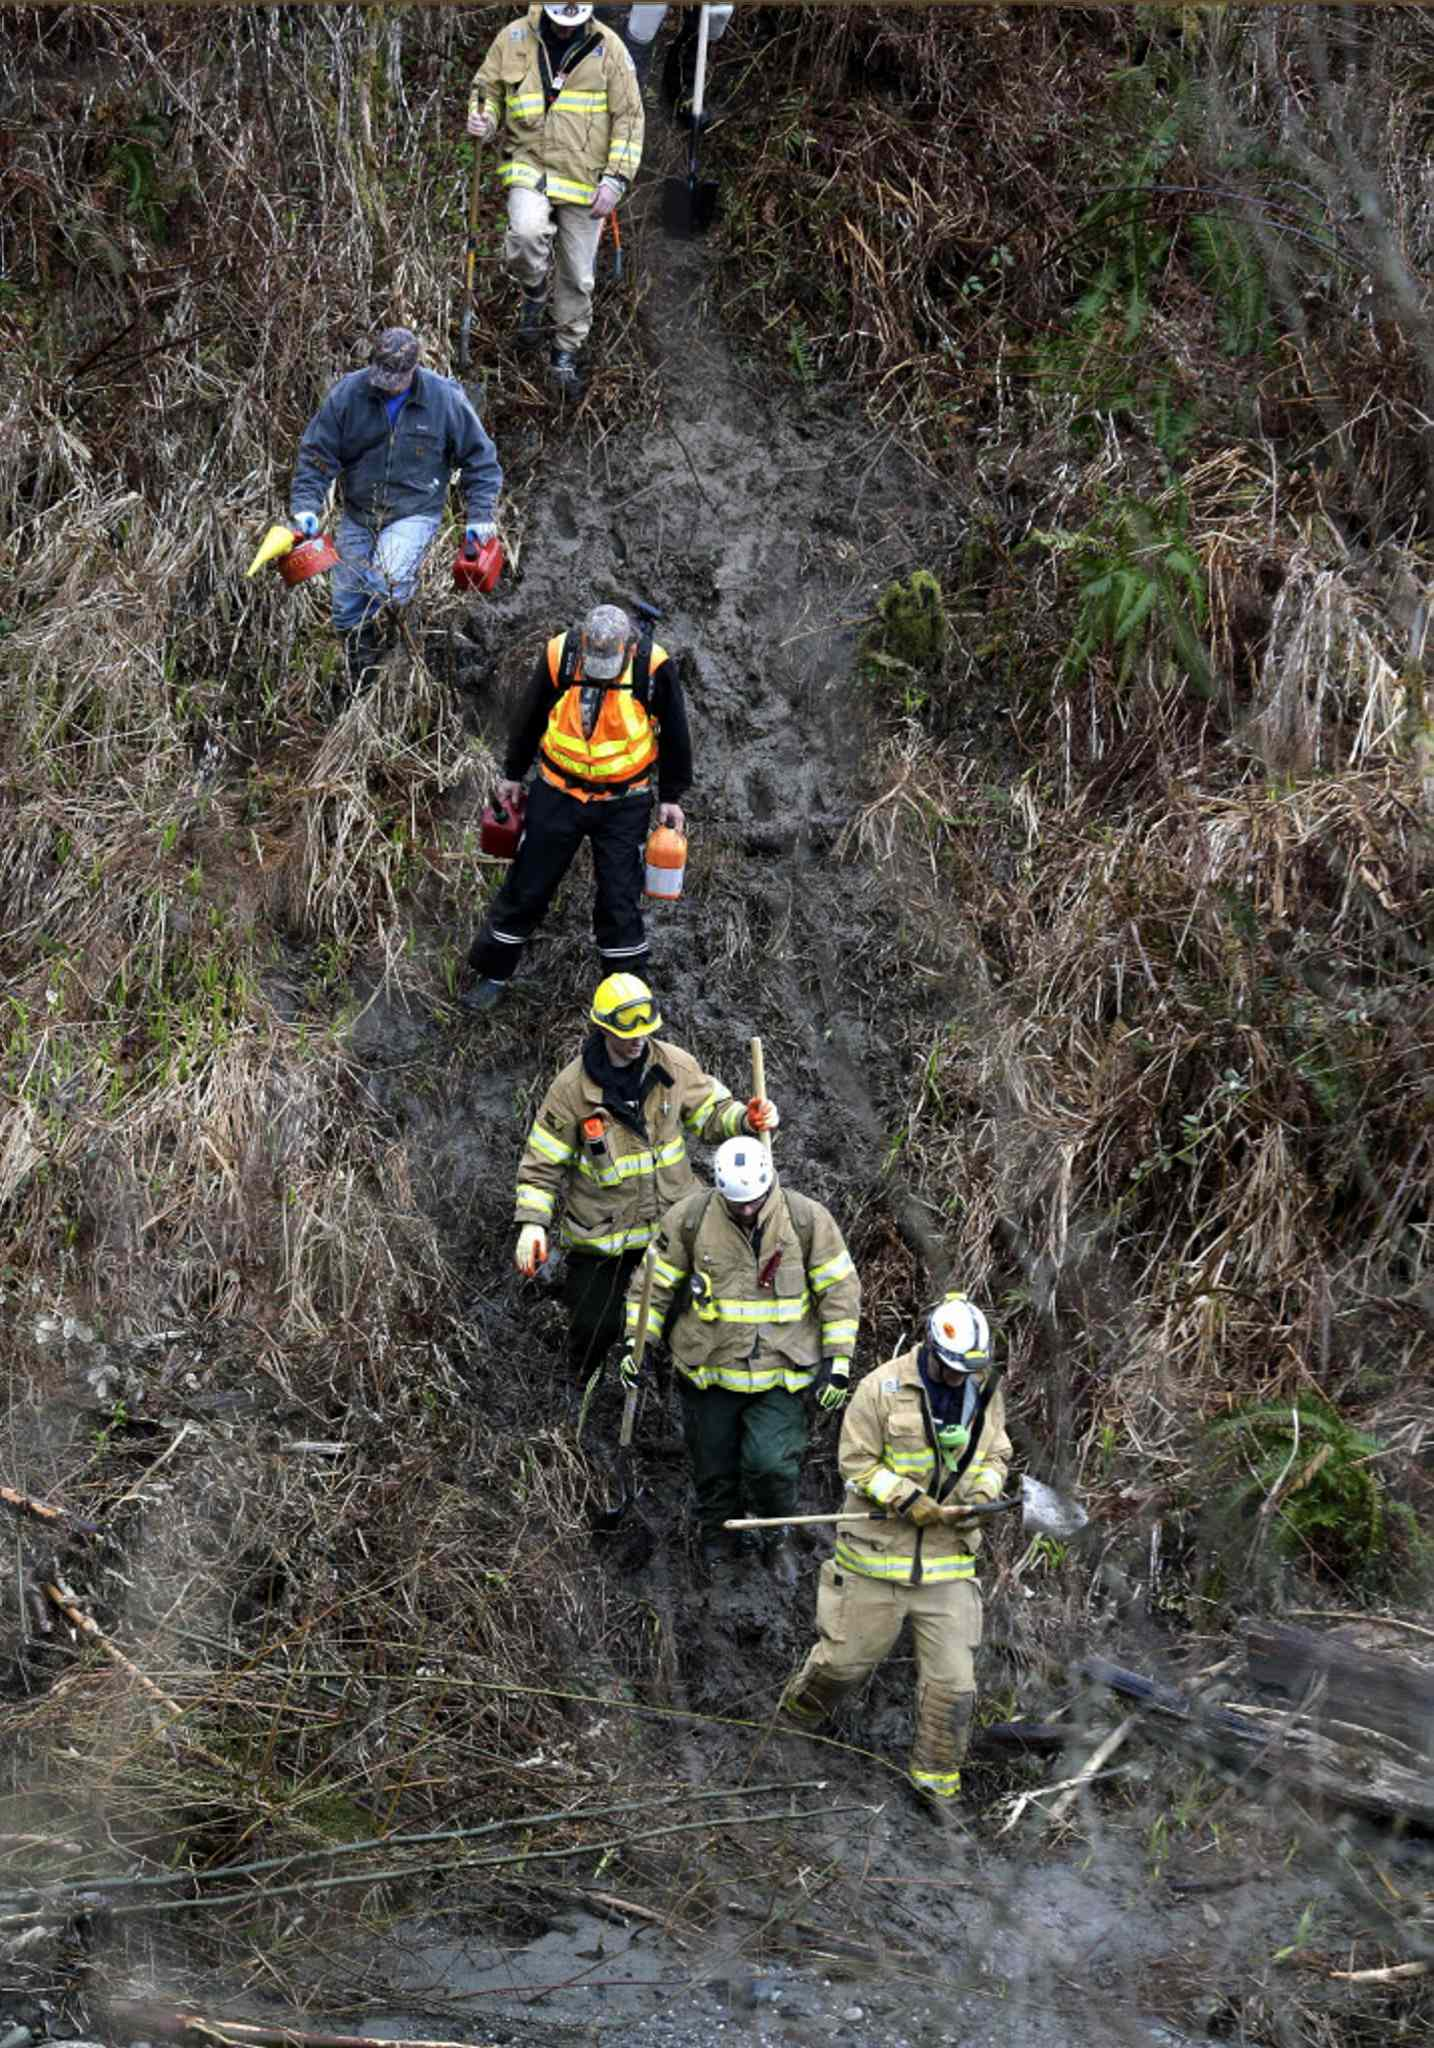 Volunteers and firefighters with chainsaws and hand tools hike down toward the scene.